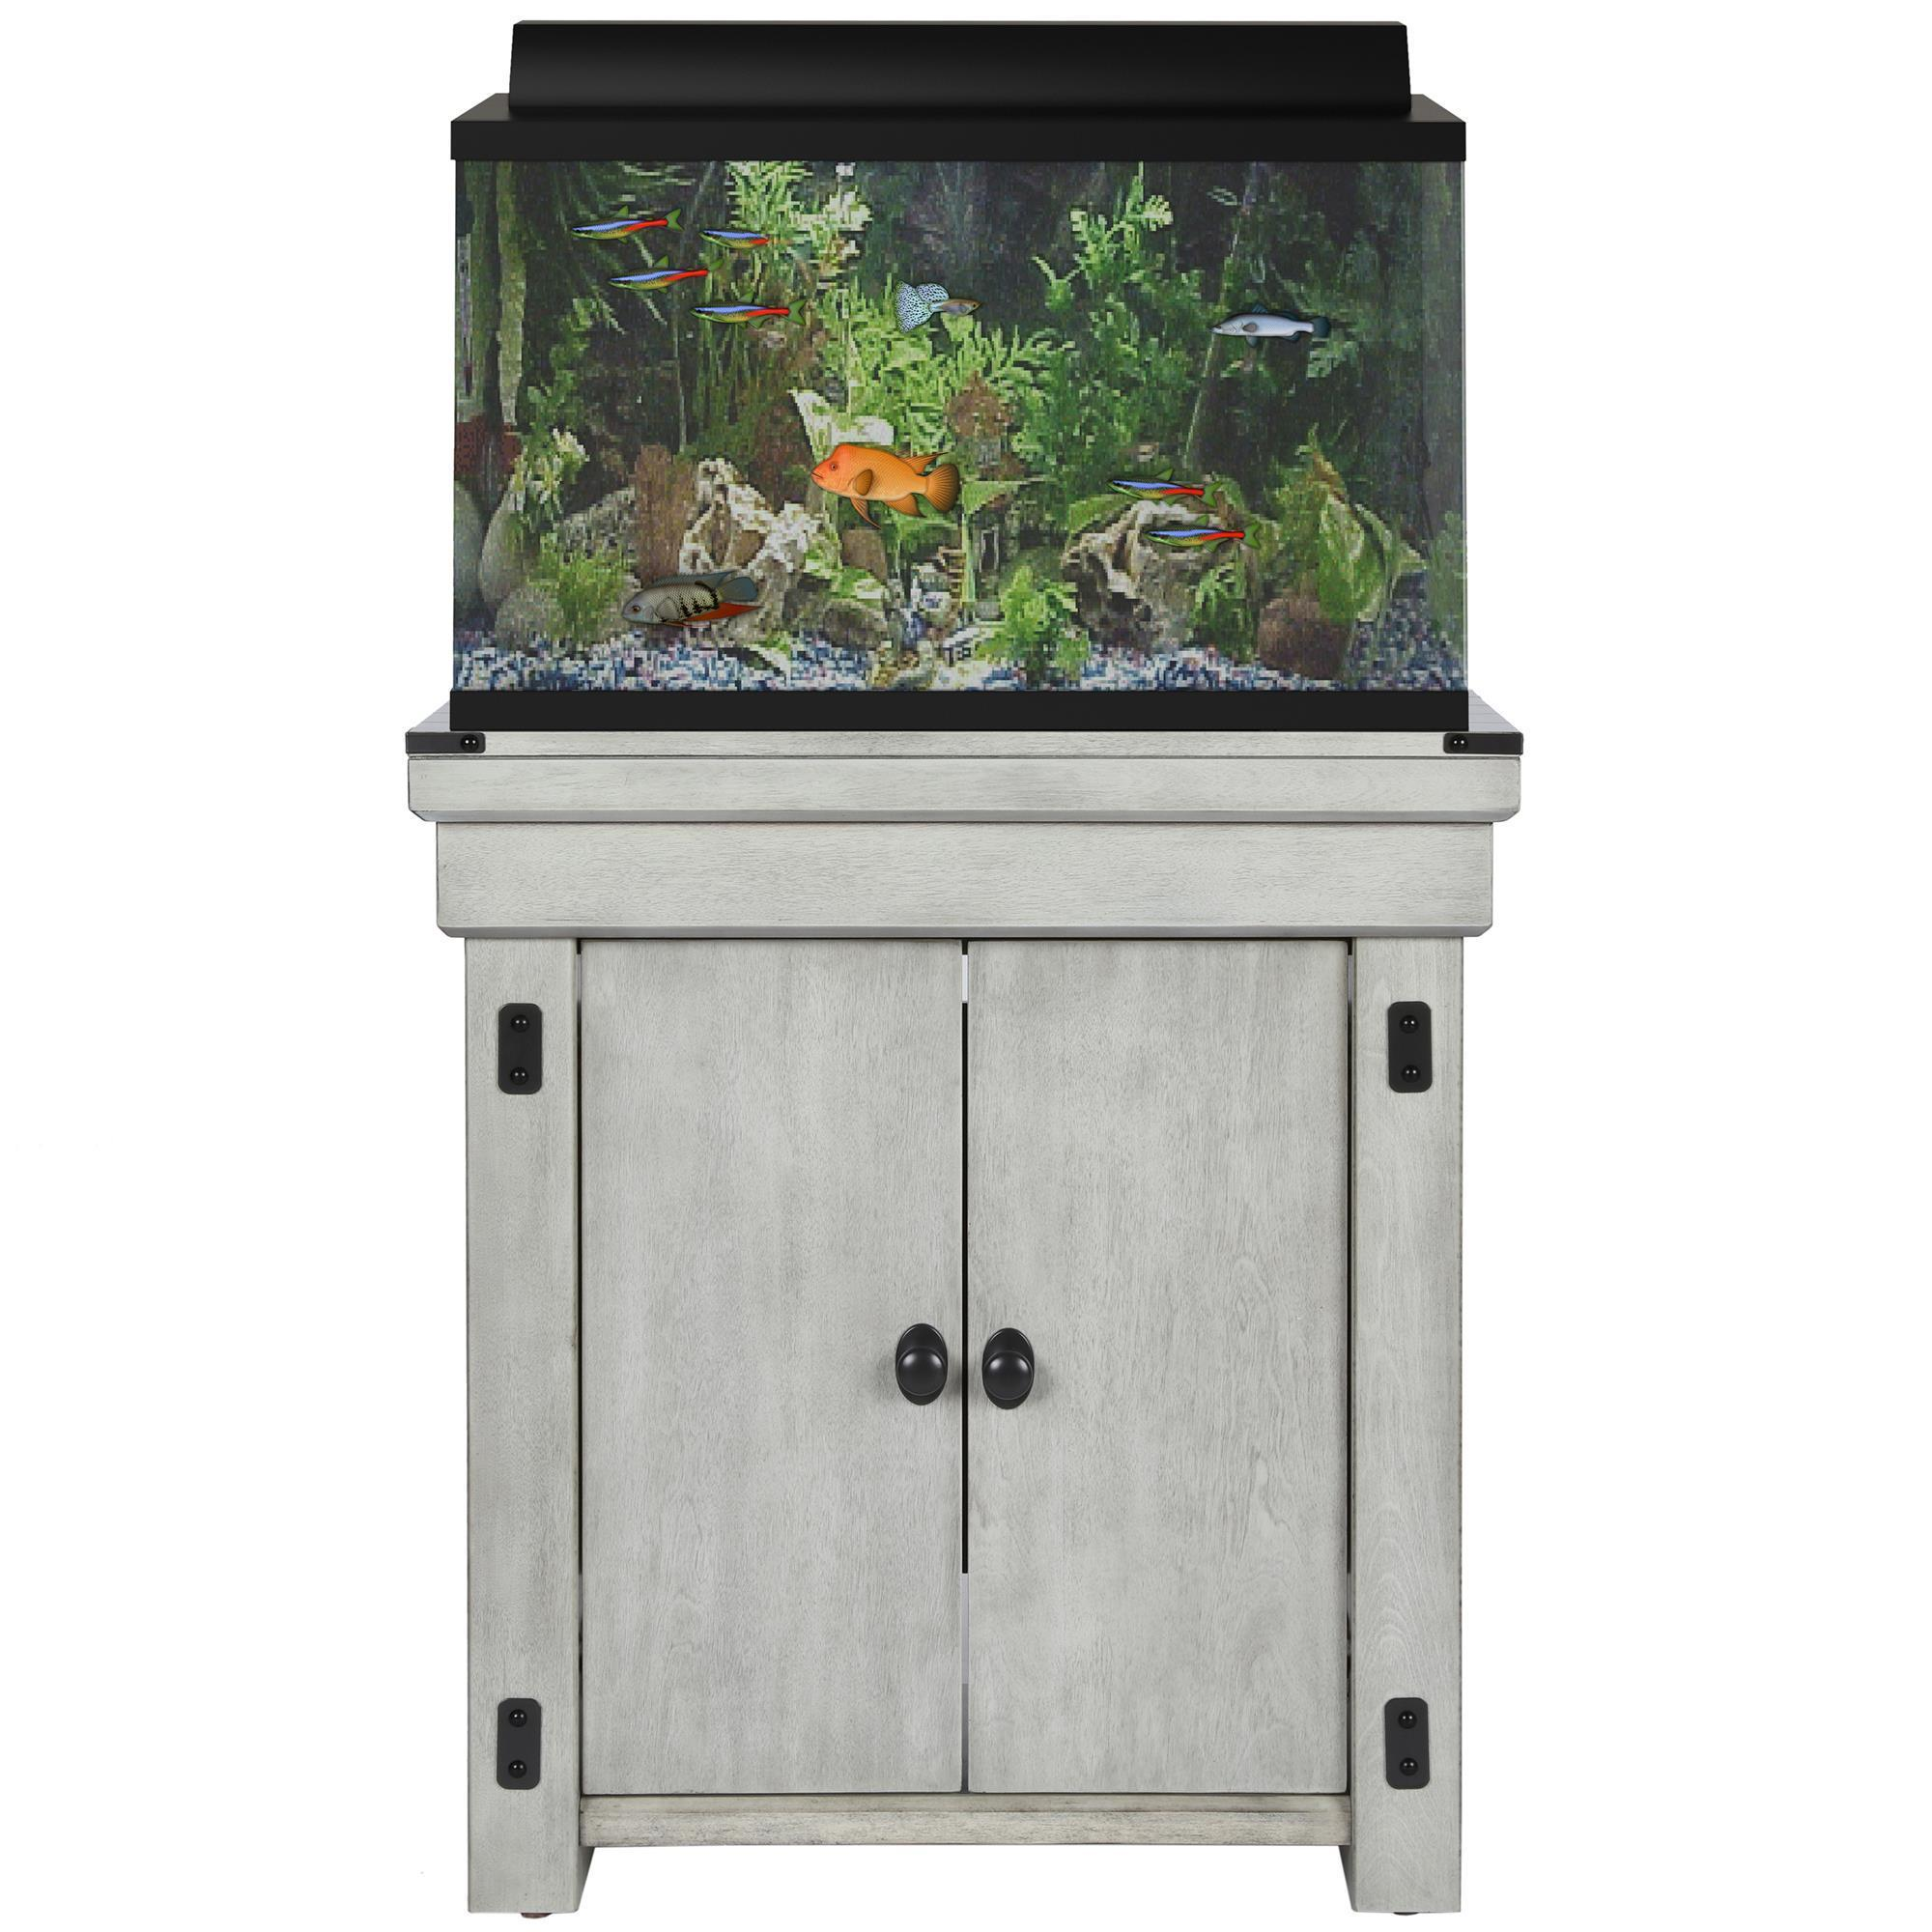 Avenue Greene Woodgate Furniture Stand for 20 gallon Aquarium Free